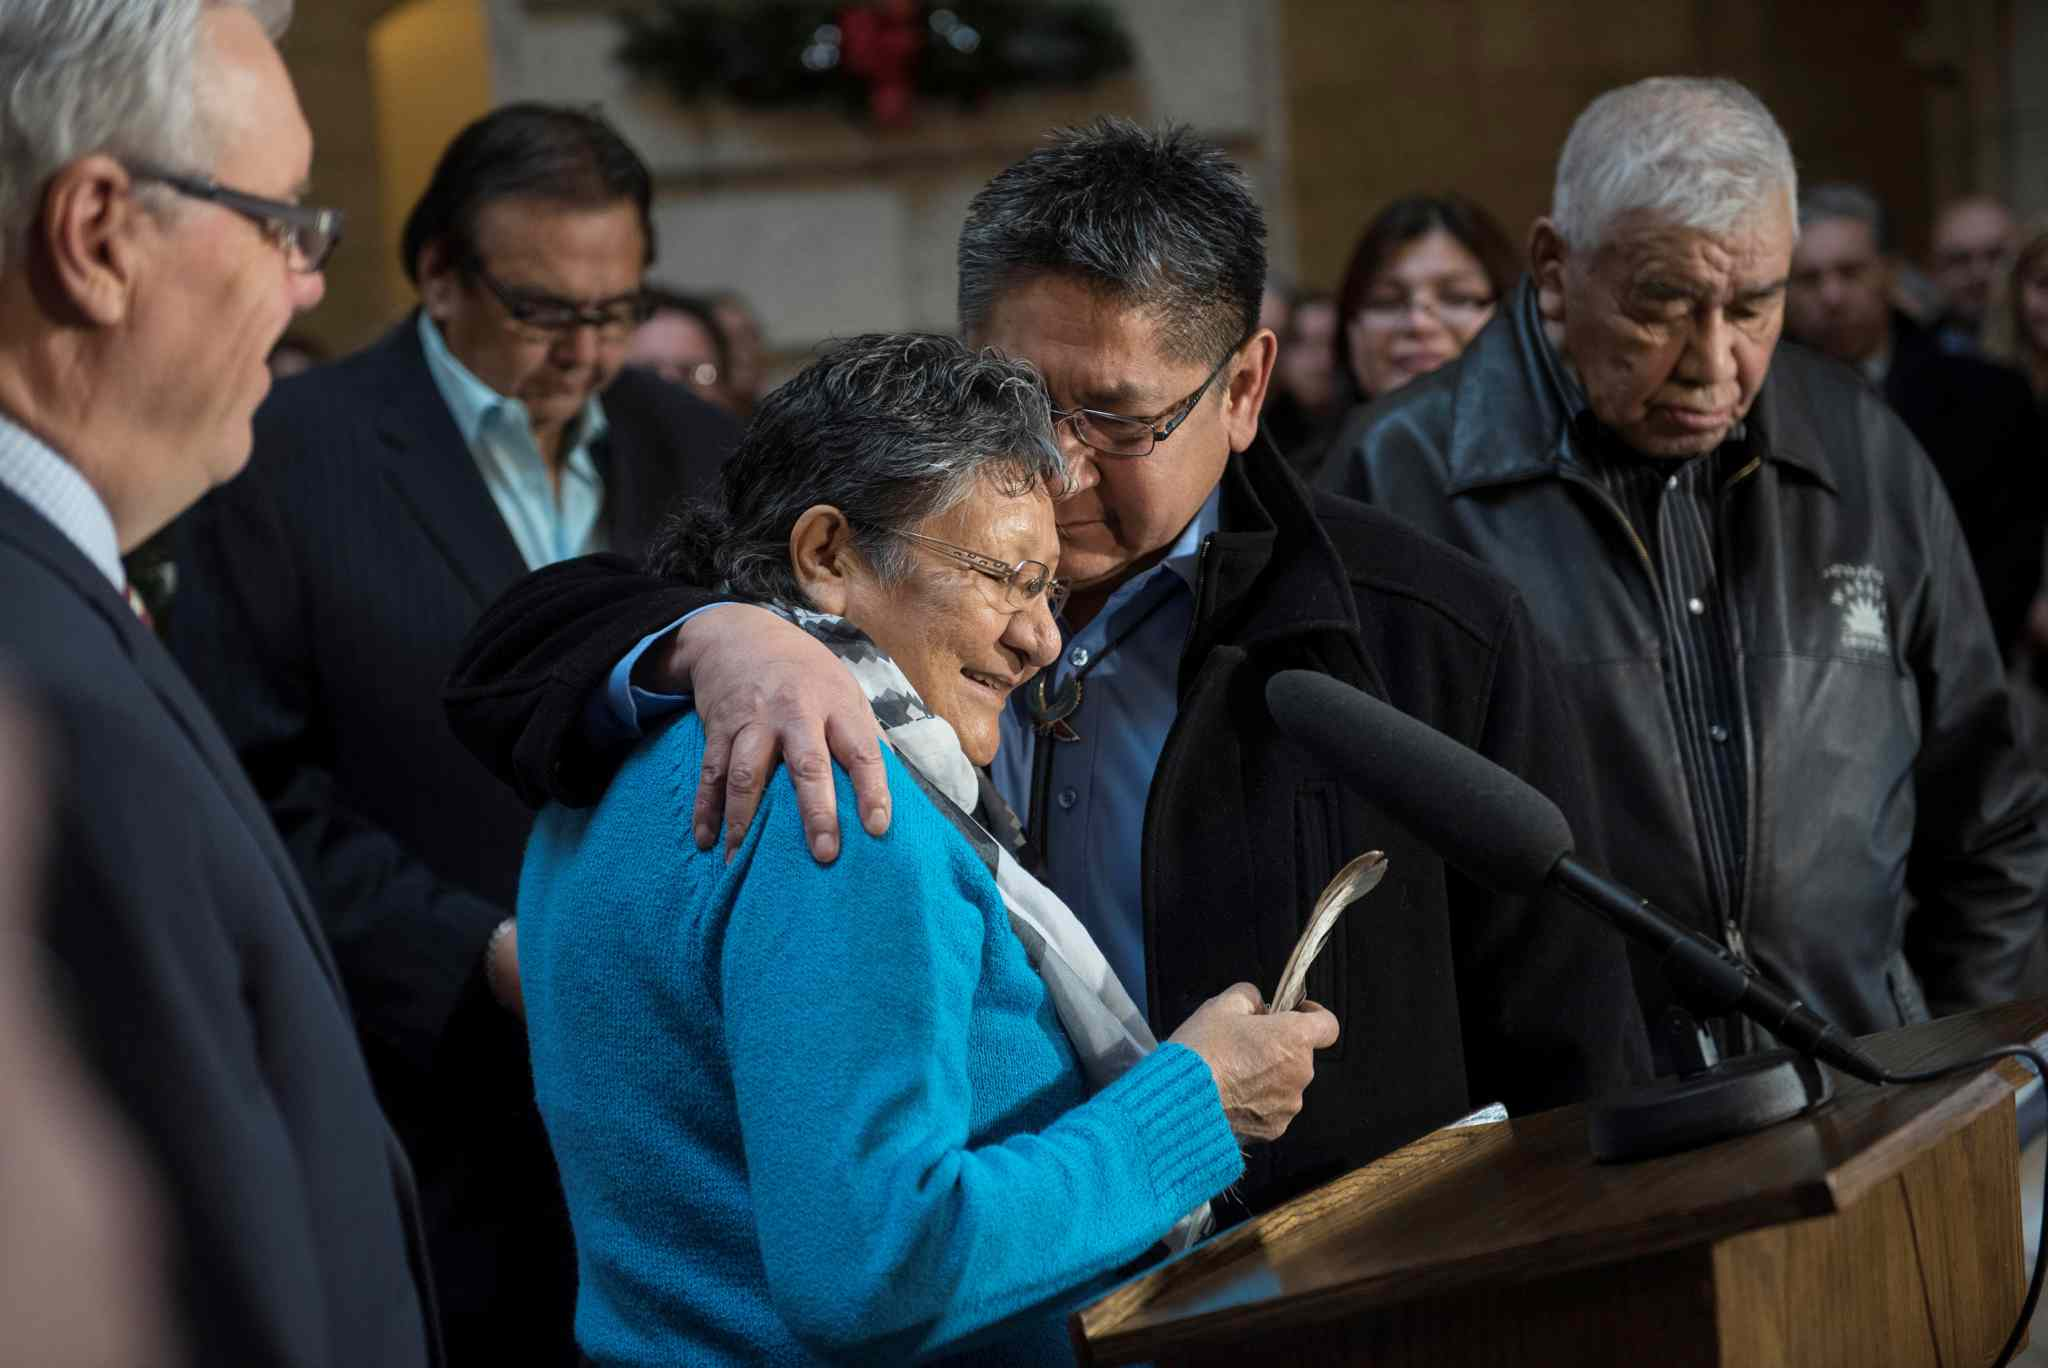 Elder Lilian Henry and Chief Erwin Redsky of Shoal Lake 40 First Nation embrace during the joint funding announcement at the Manitoba Legislature on Thursday.